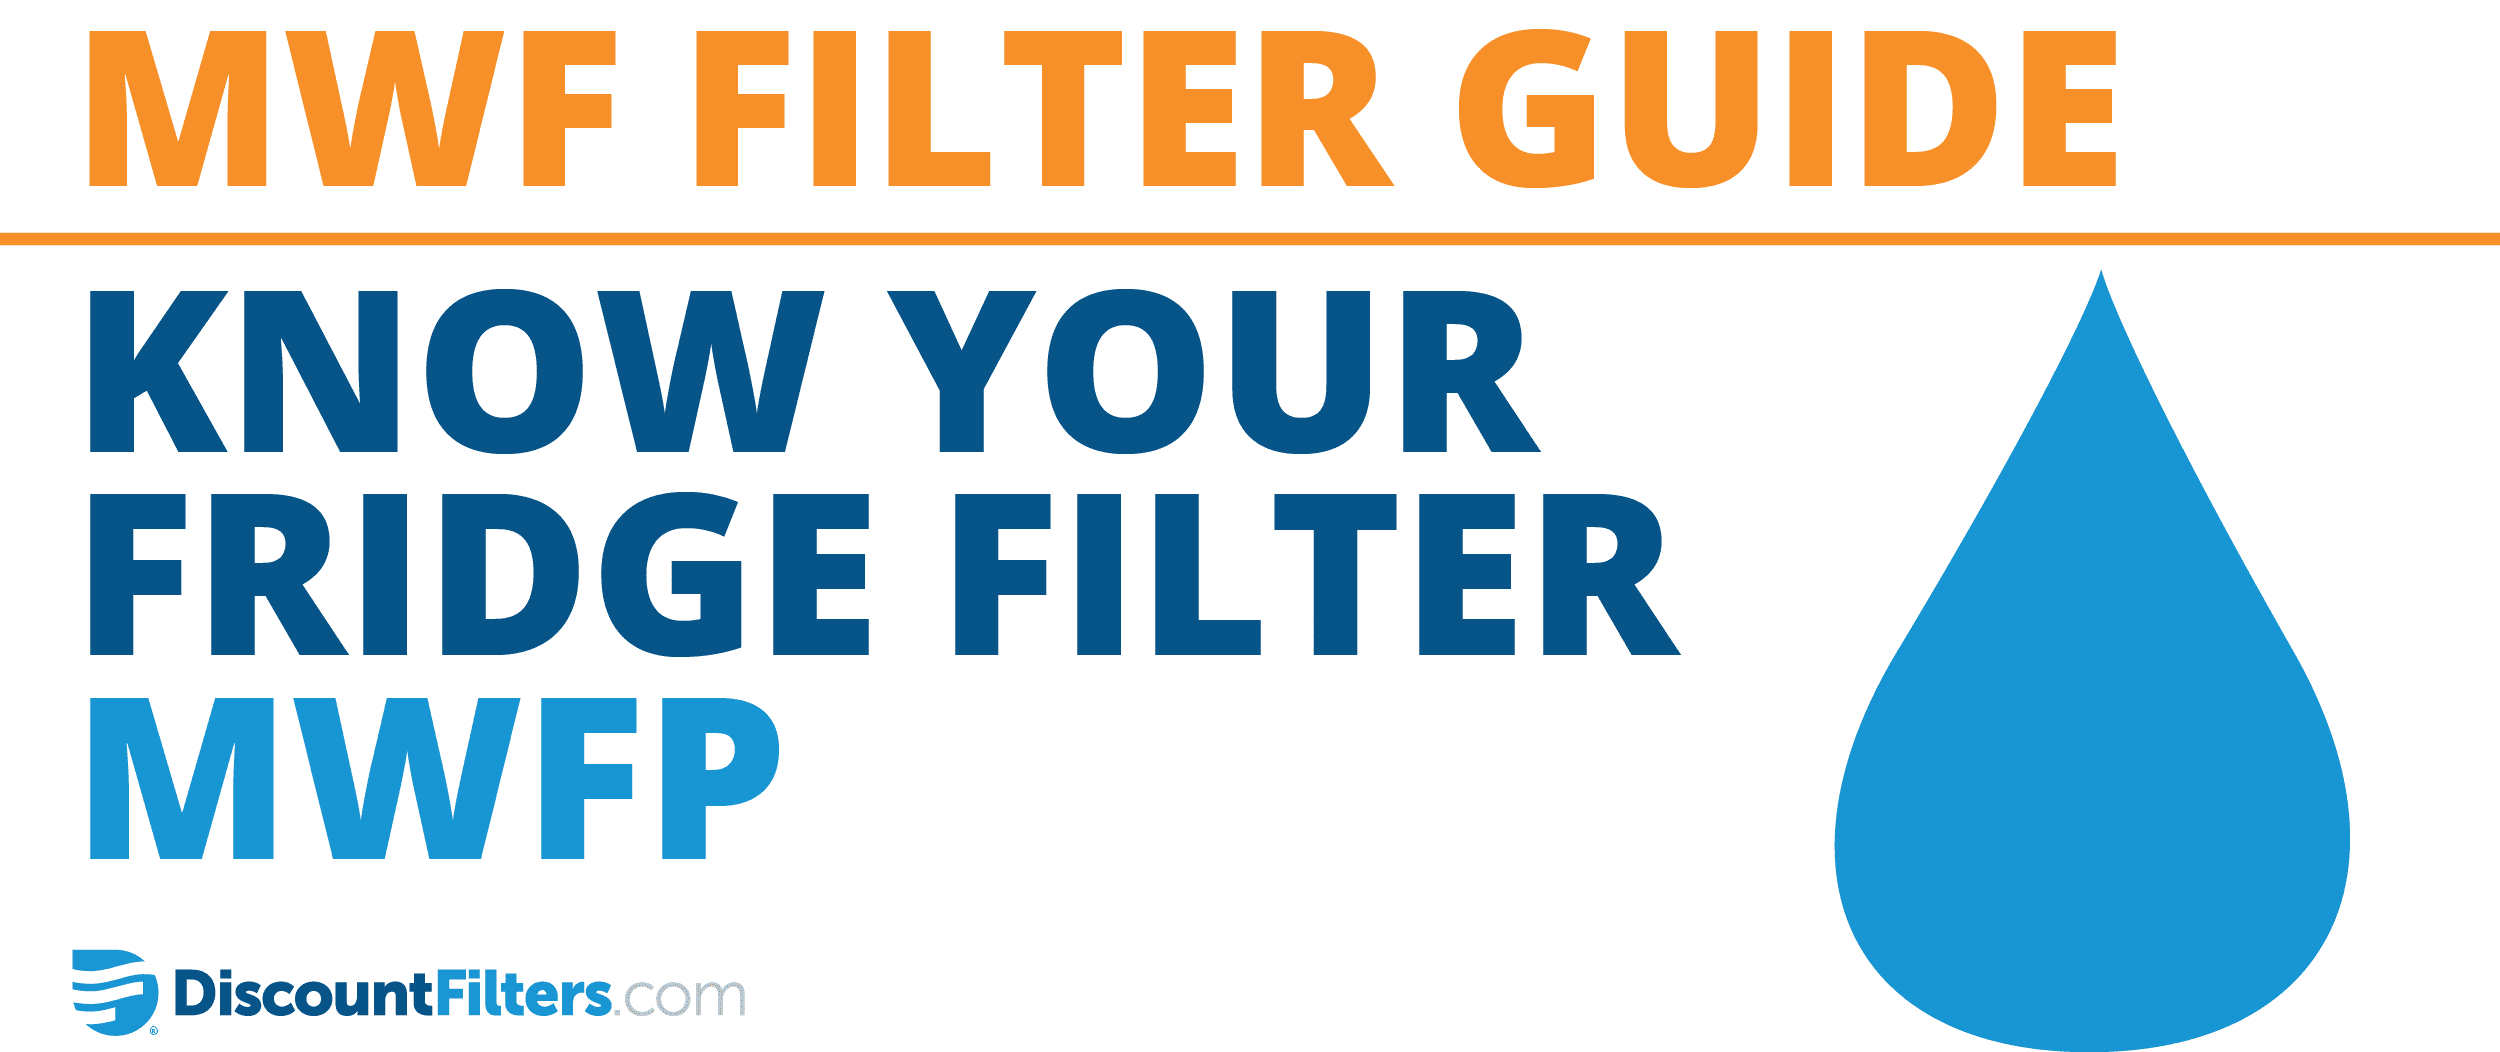 MWF filter guide: mwfp